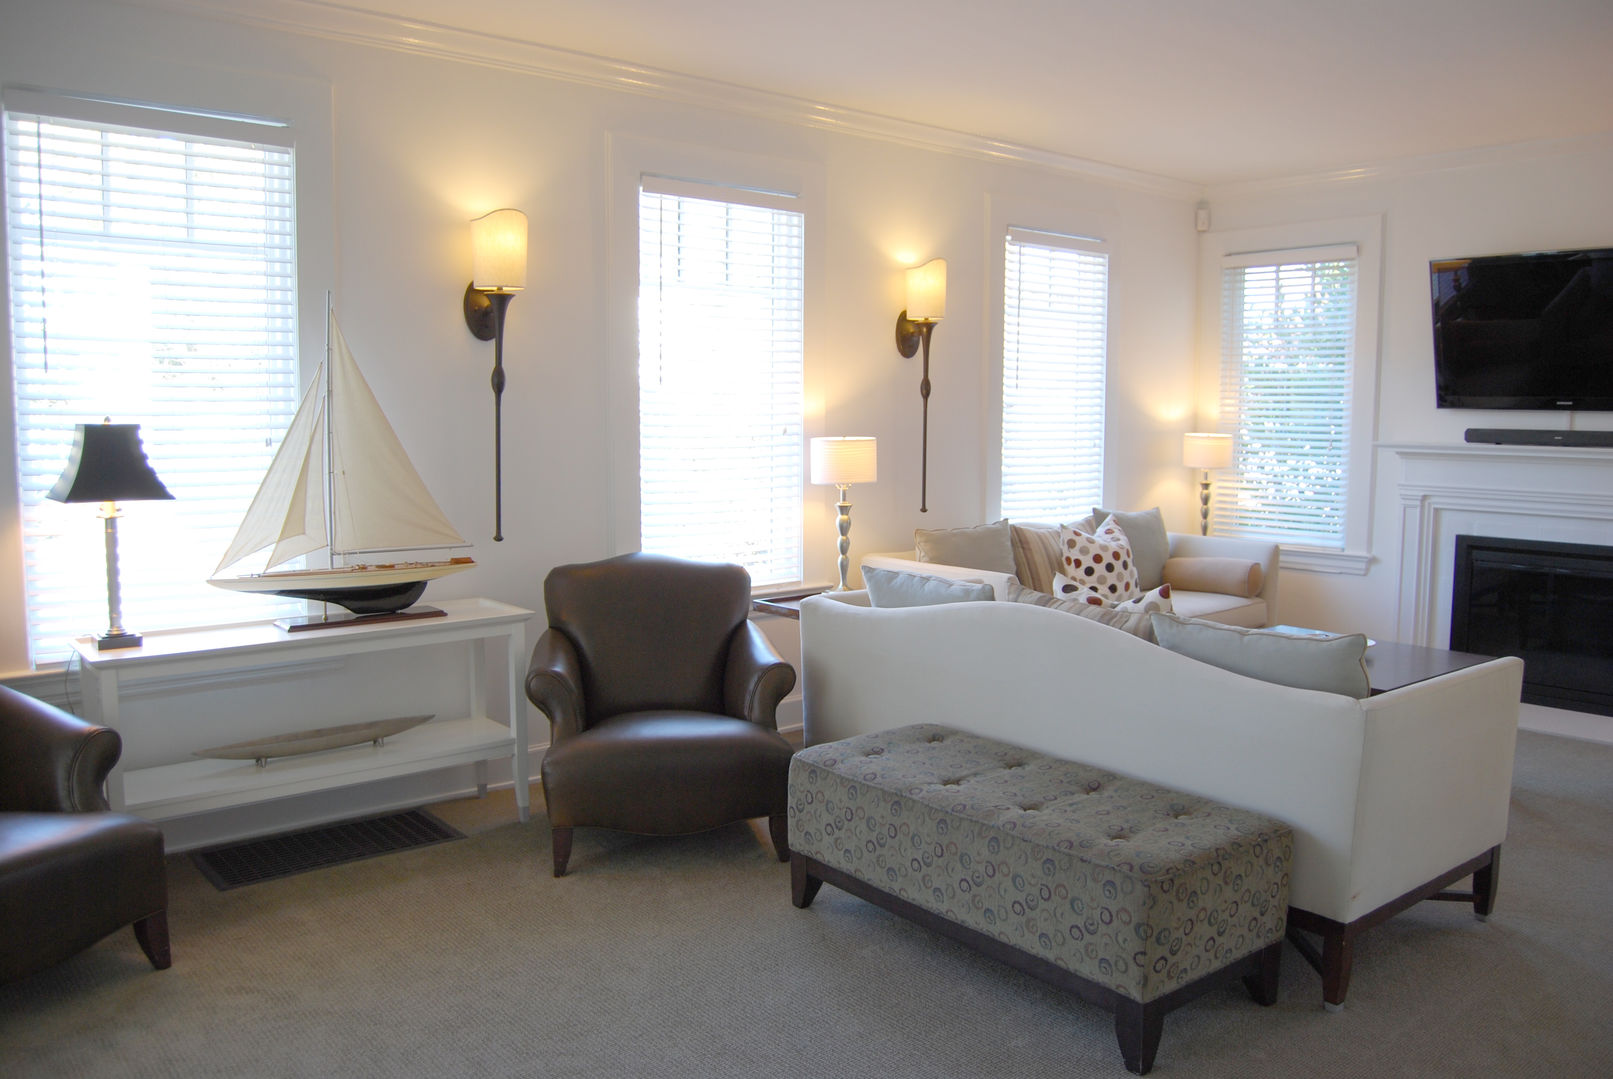 Standish House - Living Room - Sitting Area with Two Sofas